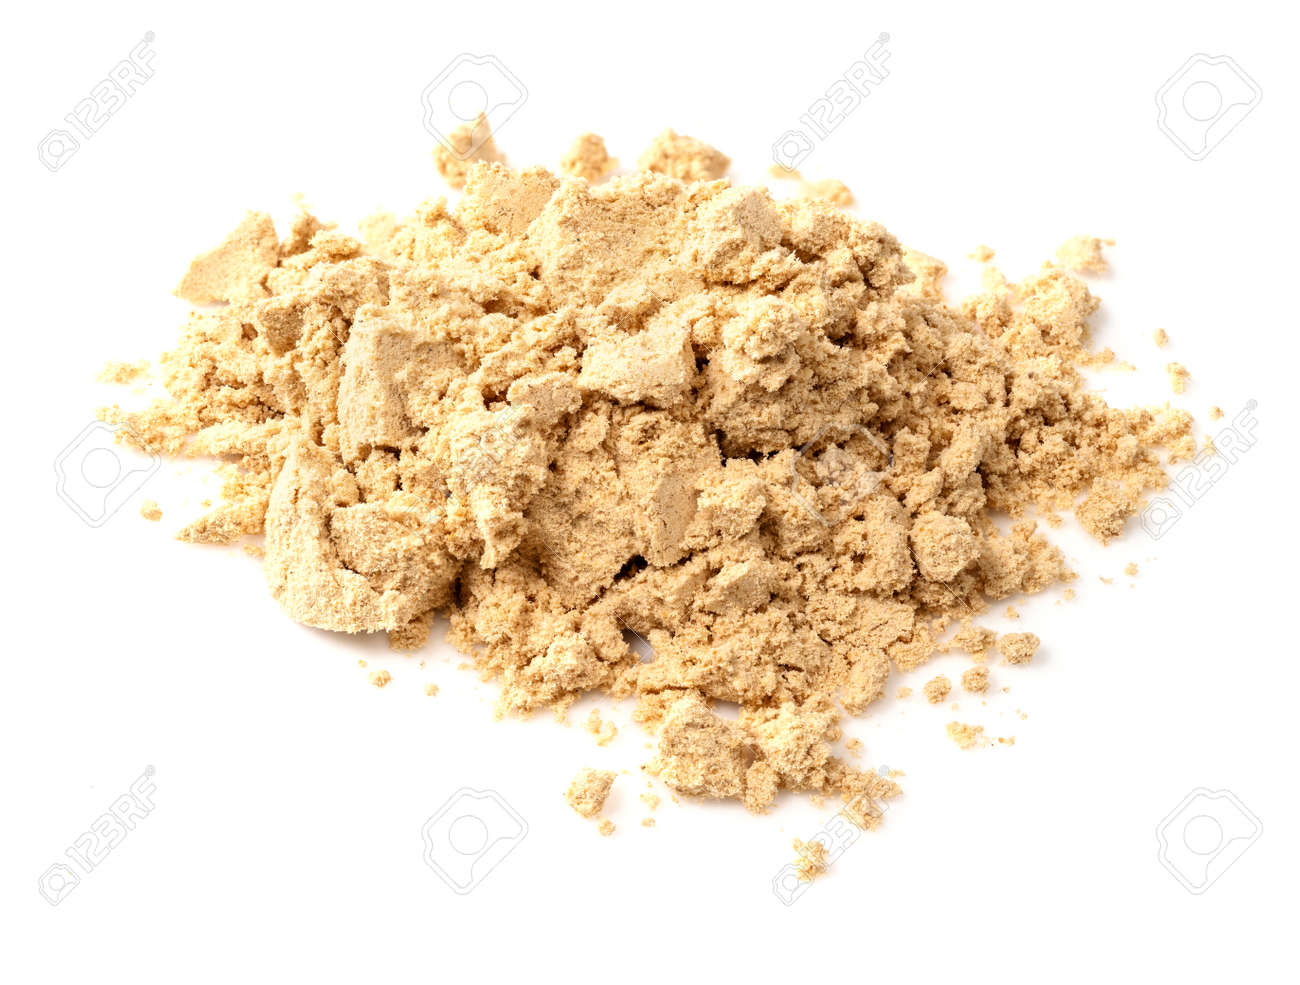 pile of ginger powder closeup on white background - 168709818